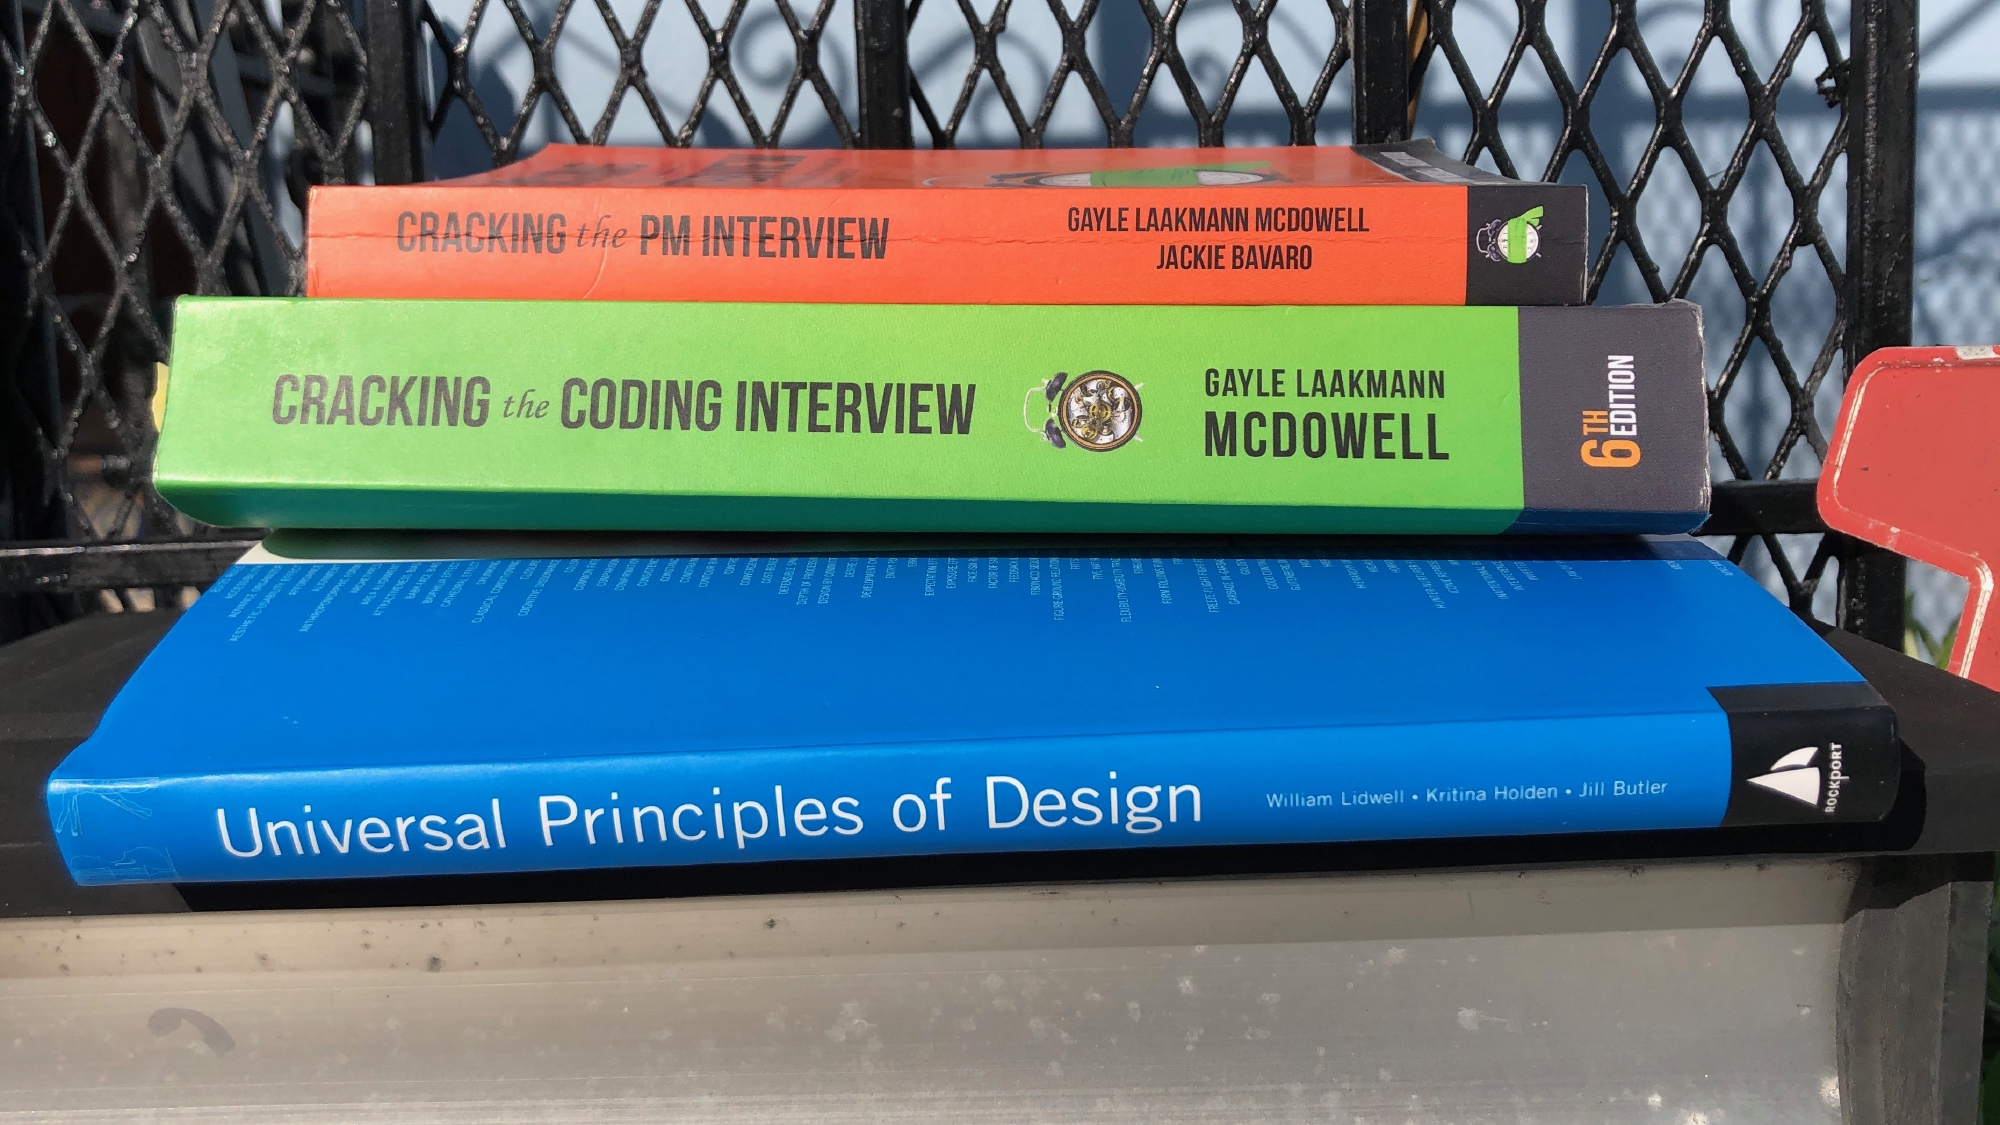 A stack of tech interview books being given away